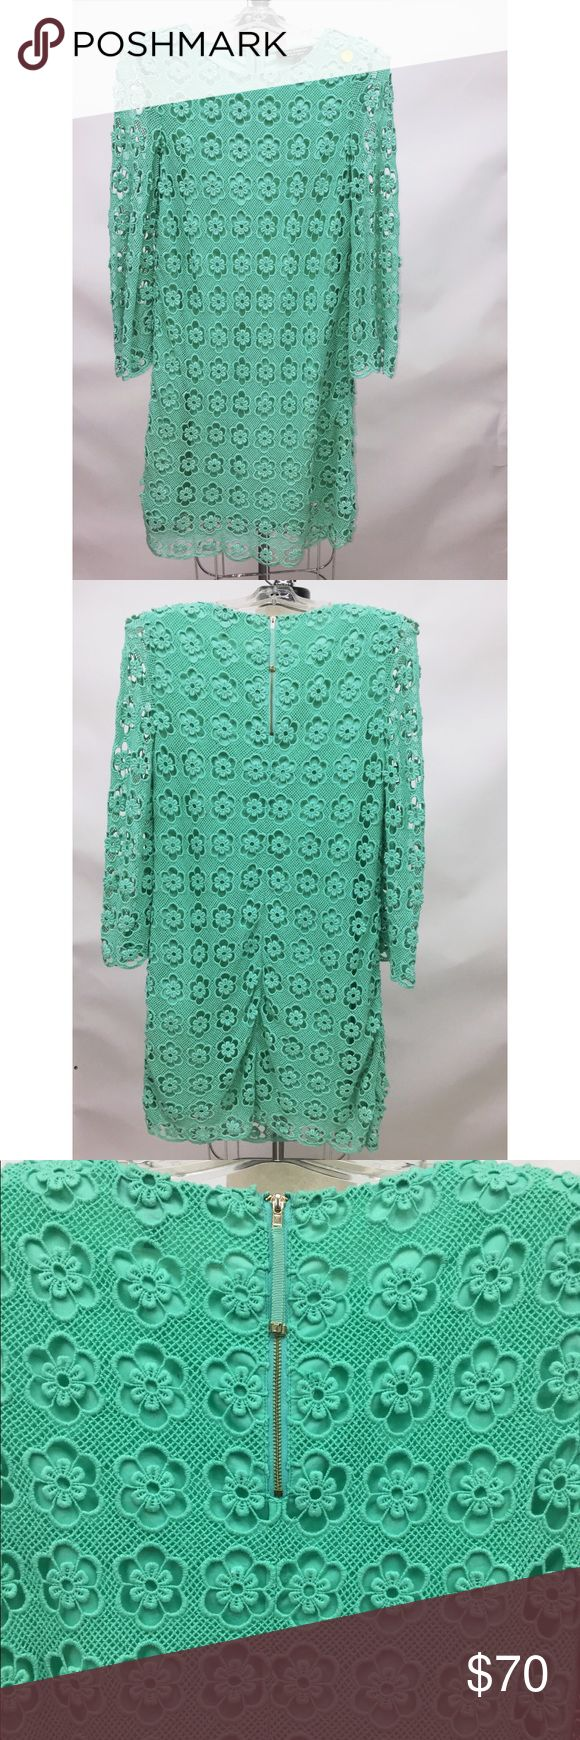 Lace dress by Juicy Couture Turquoise lace dress with zipper at back. Drsss is very simple and elegant.  Can be worn to work, dinner party, church etc Juicy Couture Dresses Midi